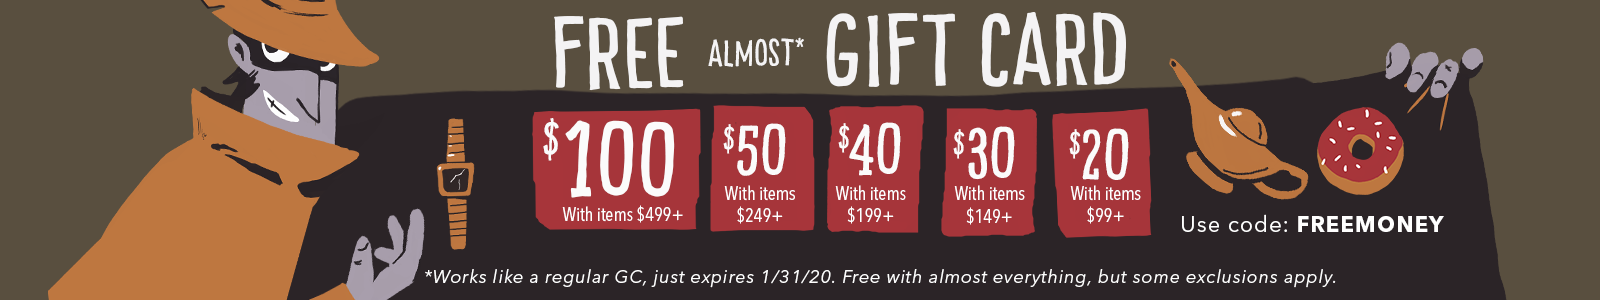 Get a Free Almost Gift Card with Any Item Over $99